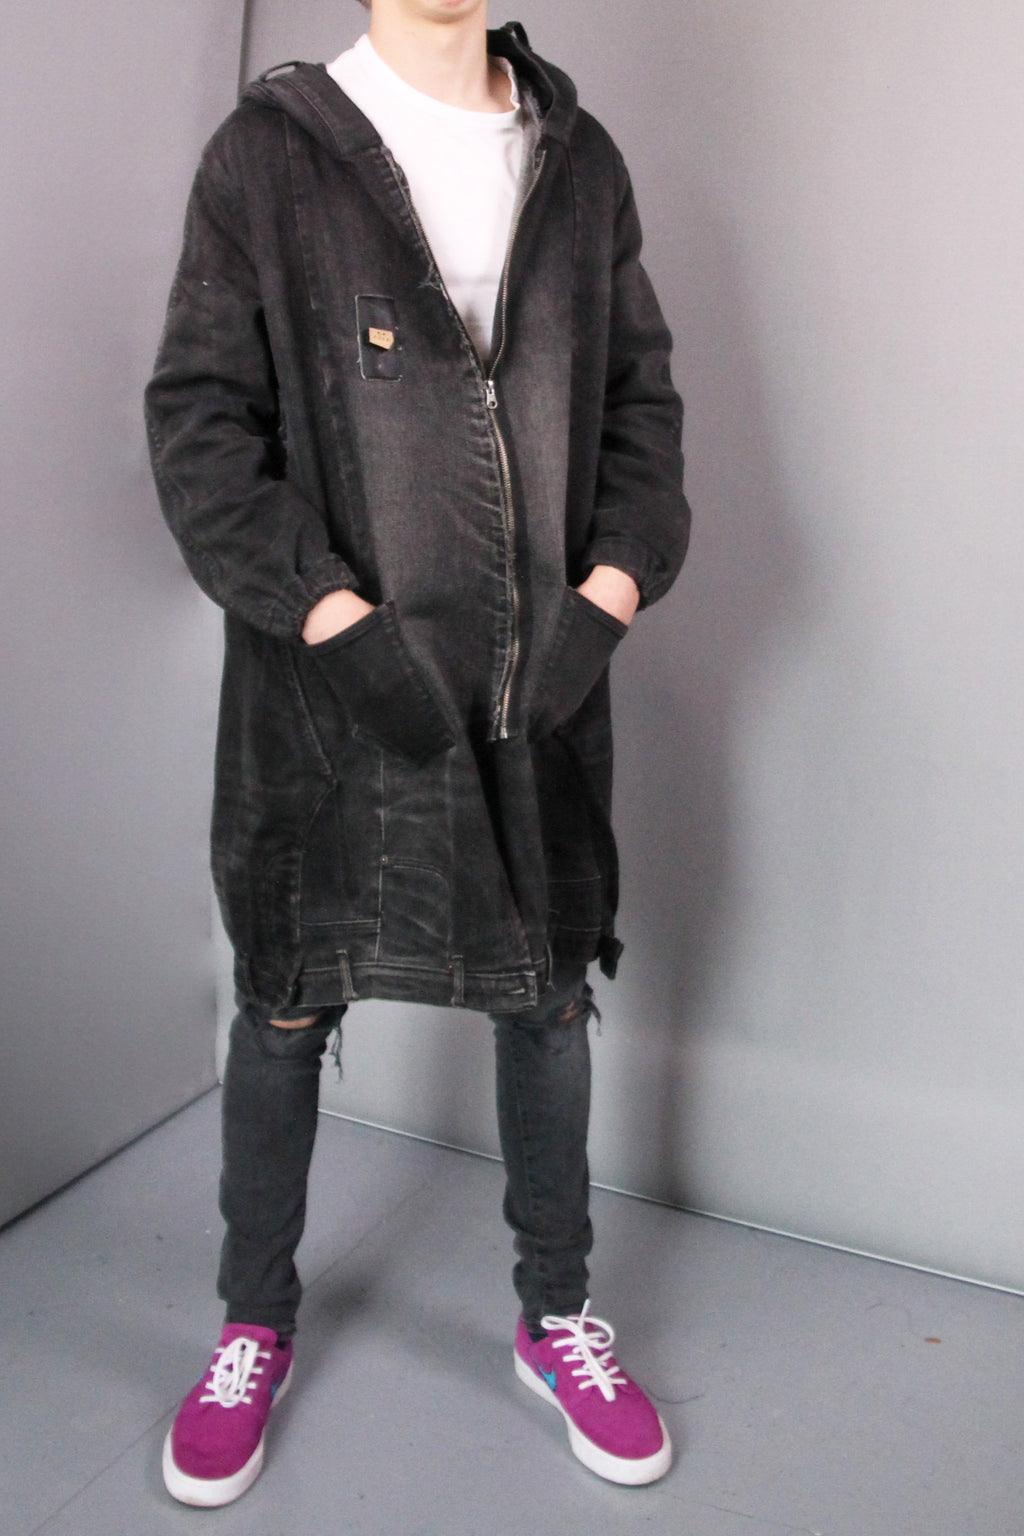 DARK UNISEX DENIM COAT